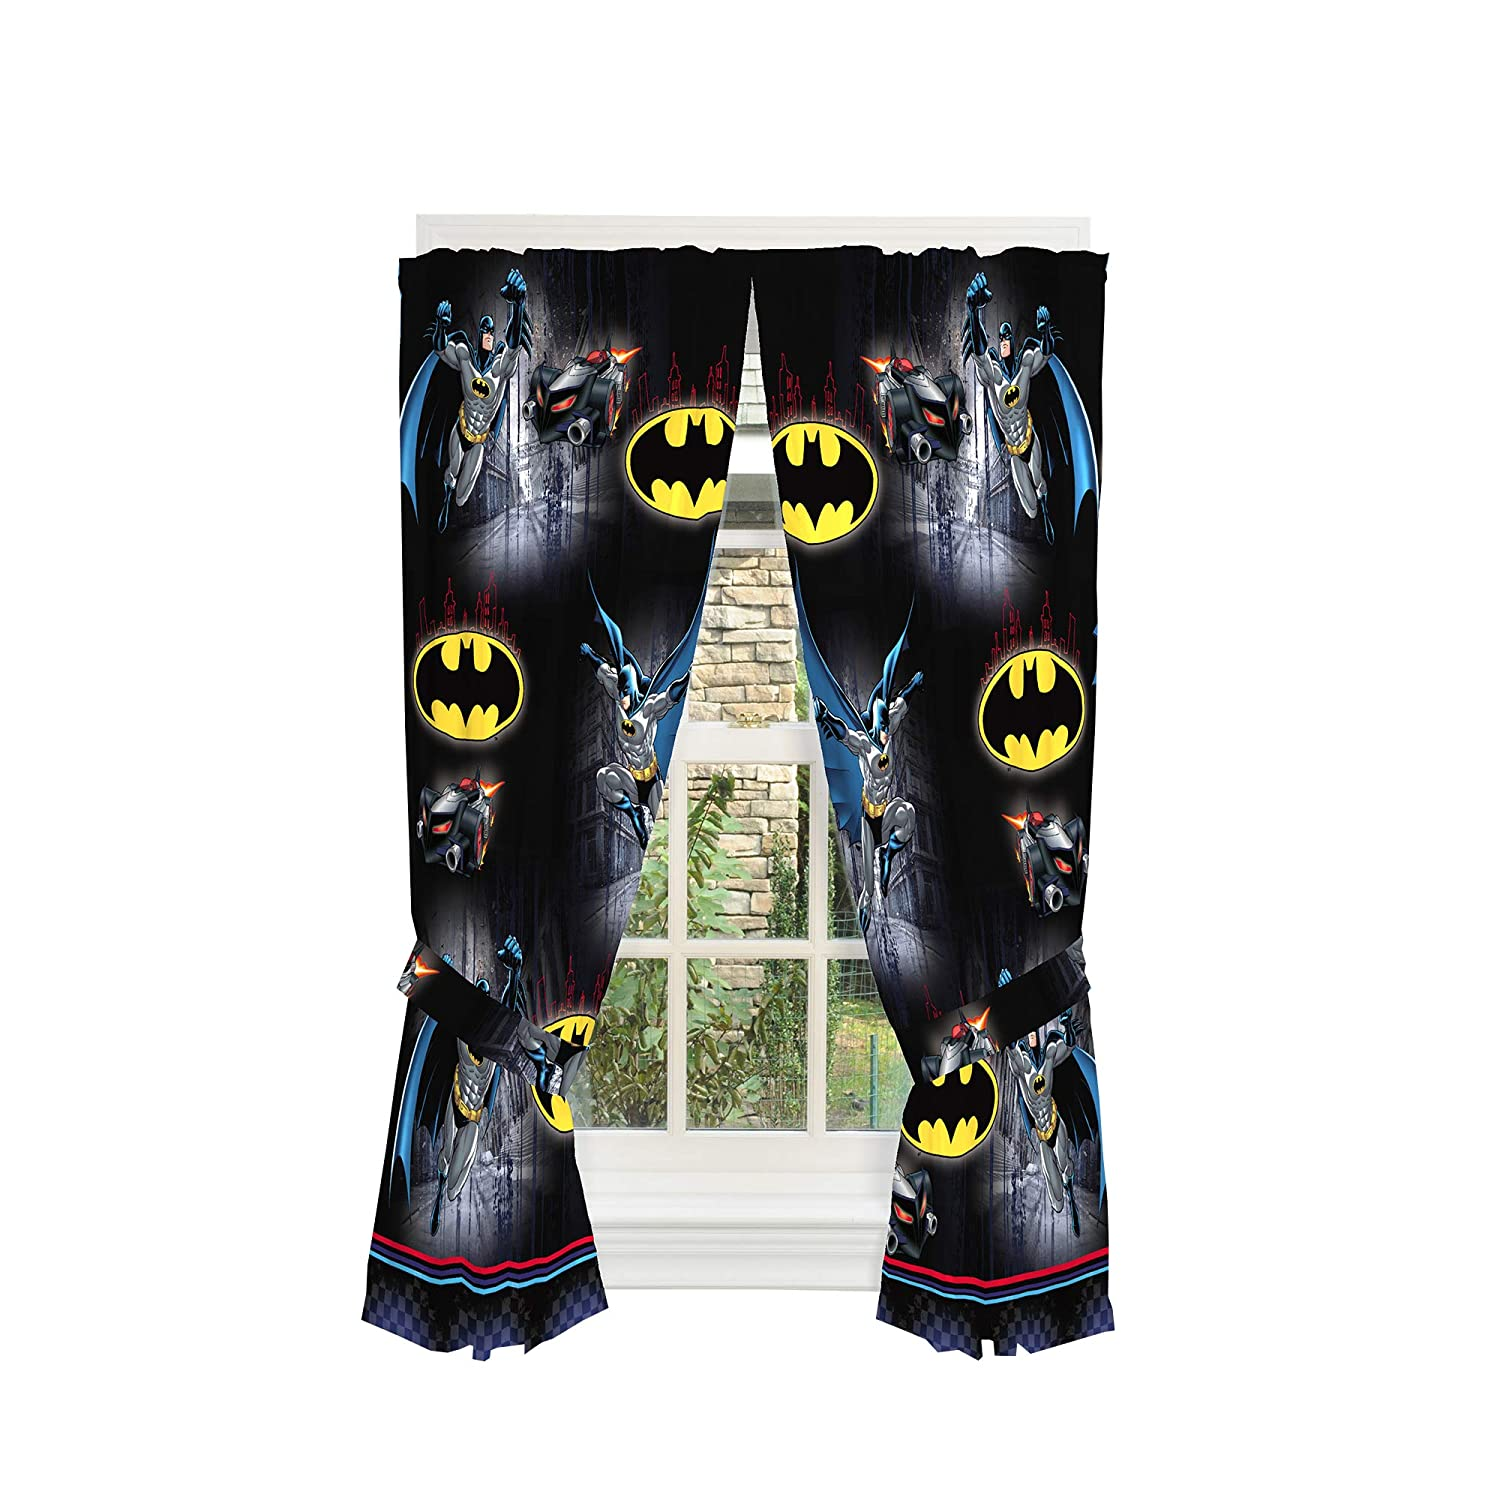 "Warner Bros Batman Kids Room Window Curtain Panels with Tie Backs, 82"" x 63"", Black"